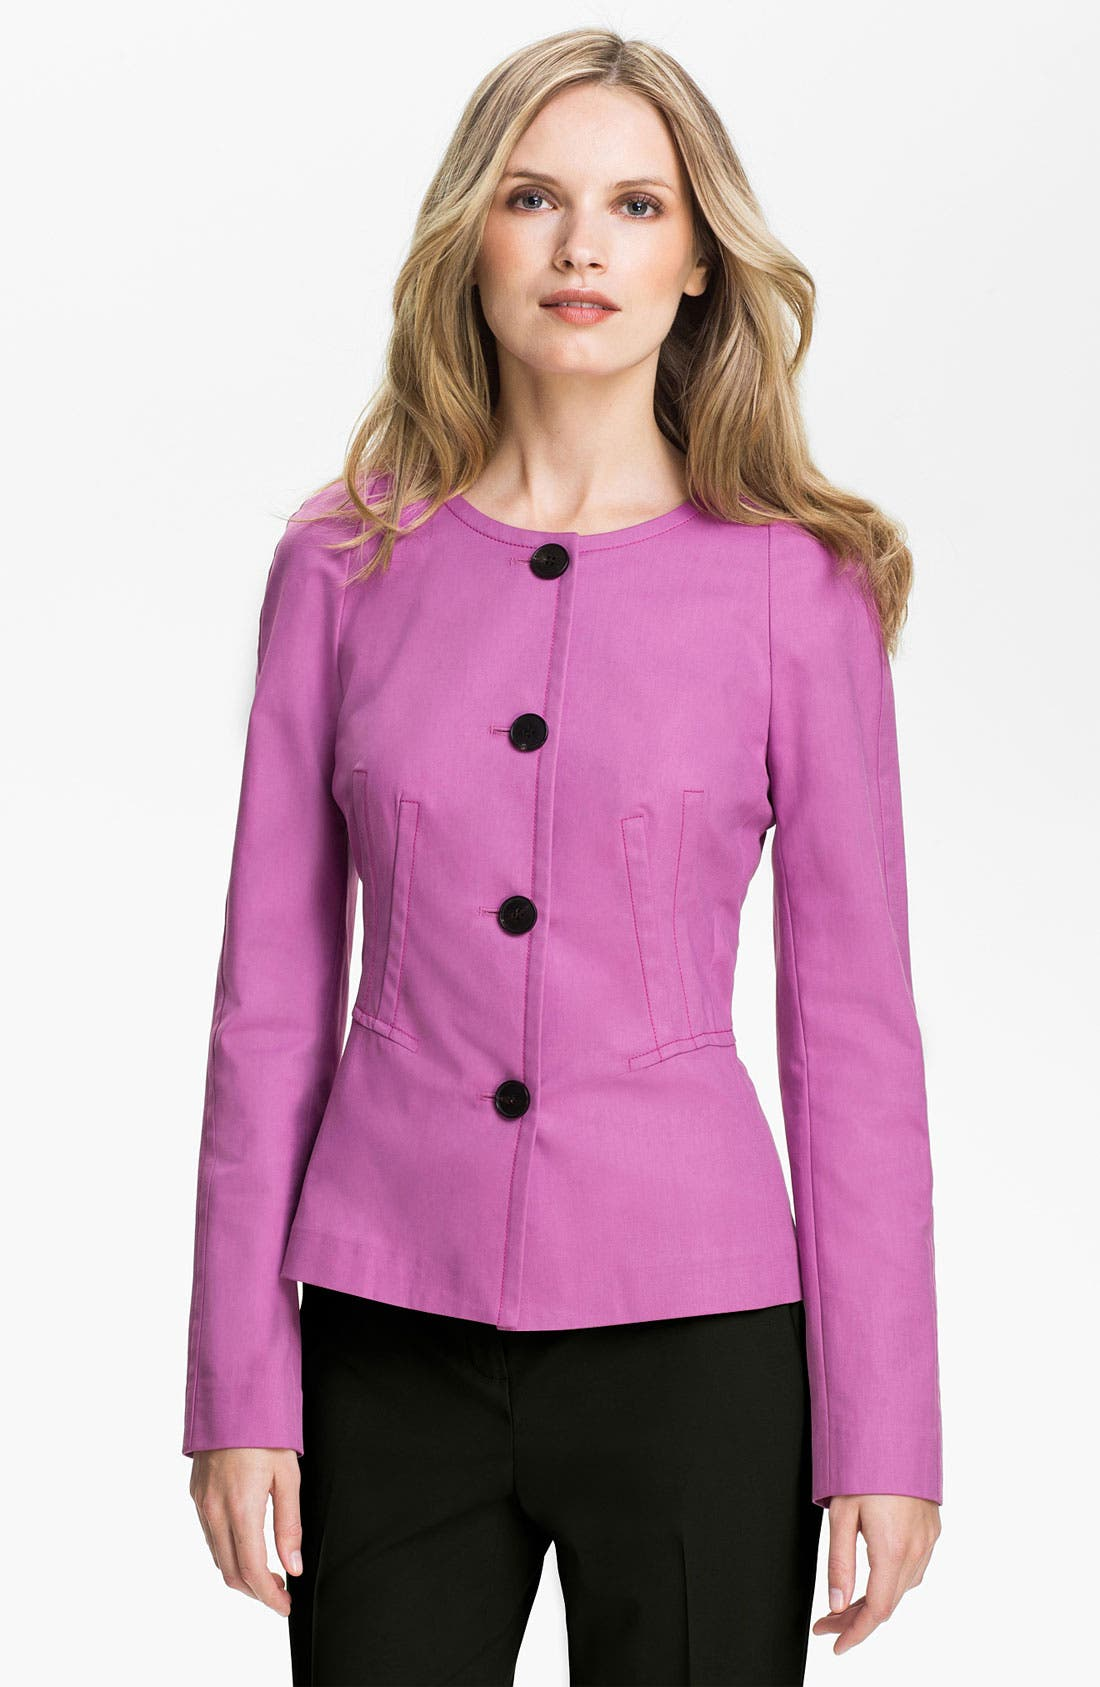 Main Image - Lafayette 148 New York 'Cailey Metropolitan Stretch' Jacket